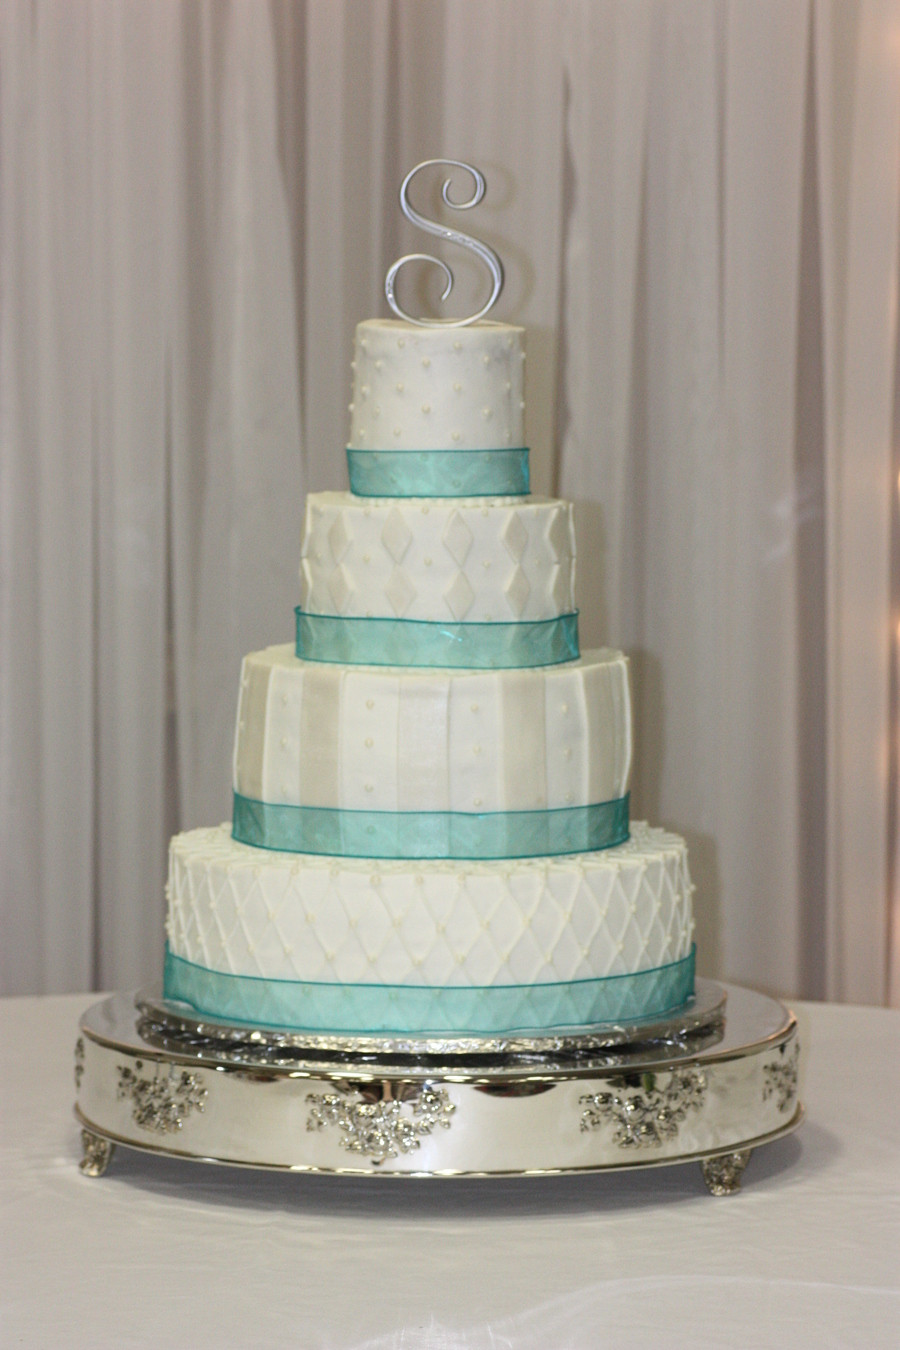 Teal And White Wedding Cakes  Teal Ribbon Round White Wedding Cake CakeCentral